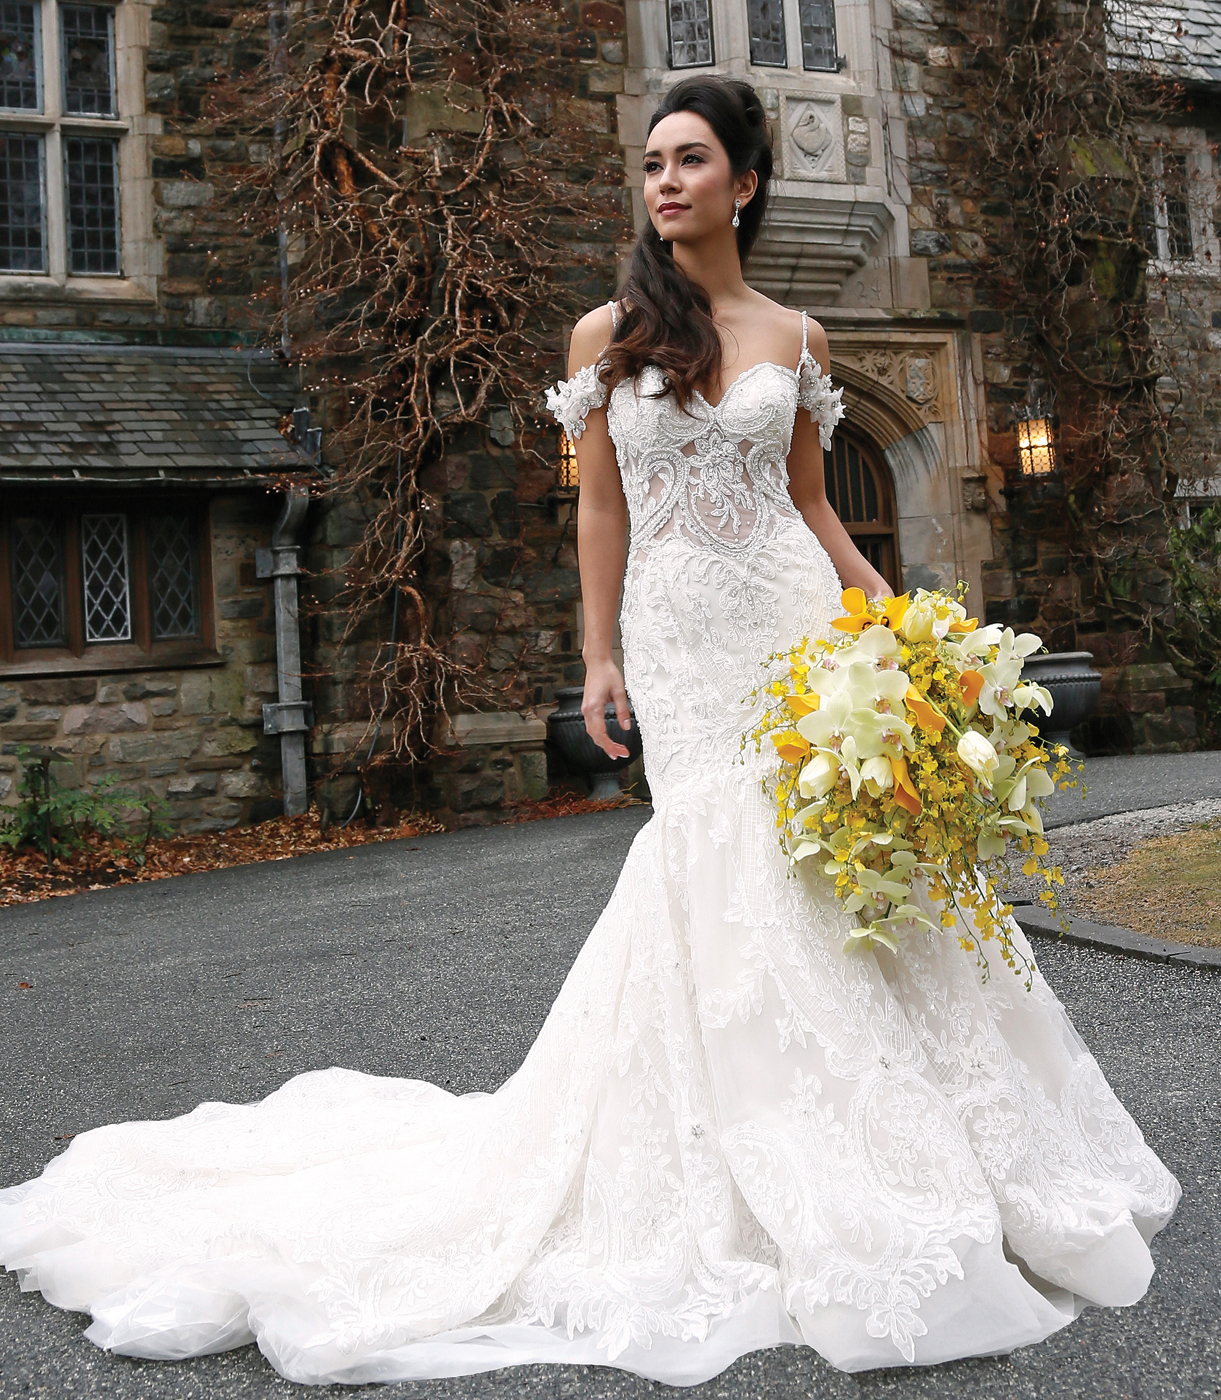 David S Bridal Wedding Gown Preservation: Bridal Looks At Skylands Manor From The Bridal Suite NY